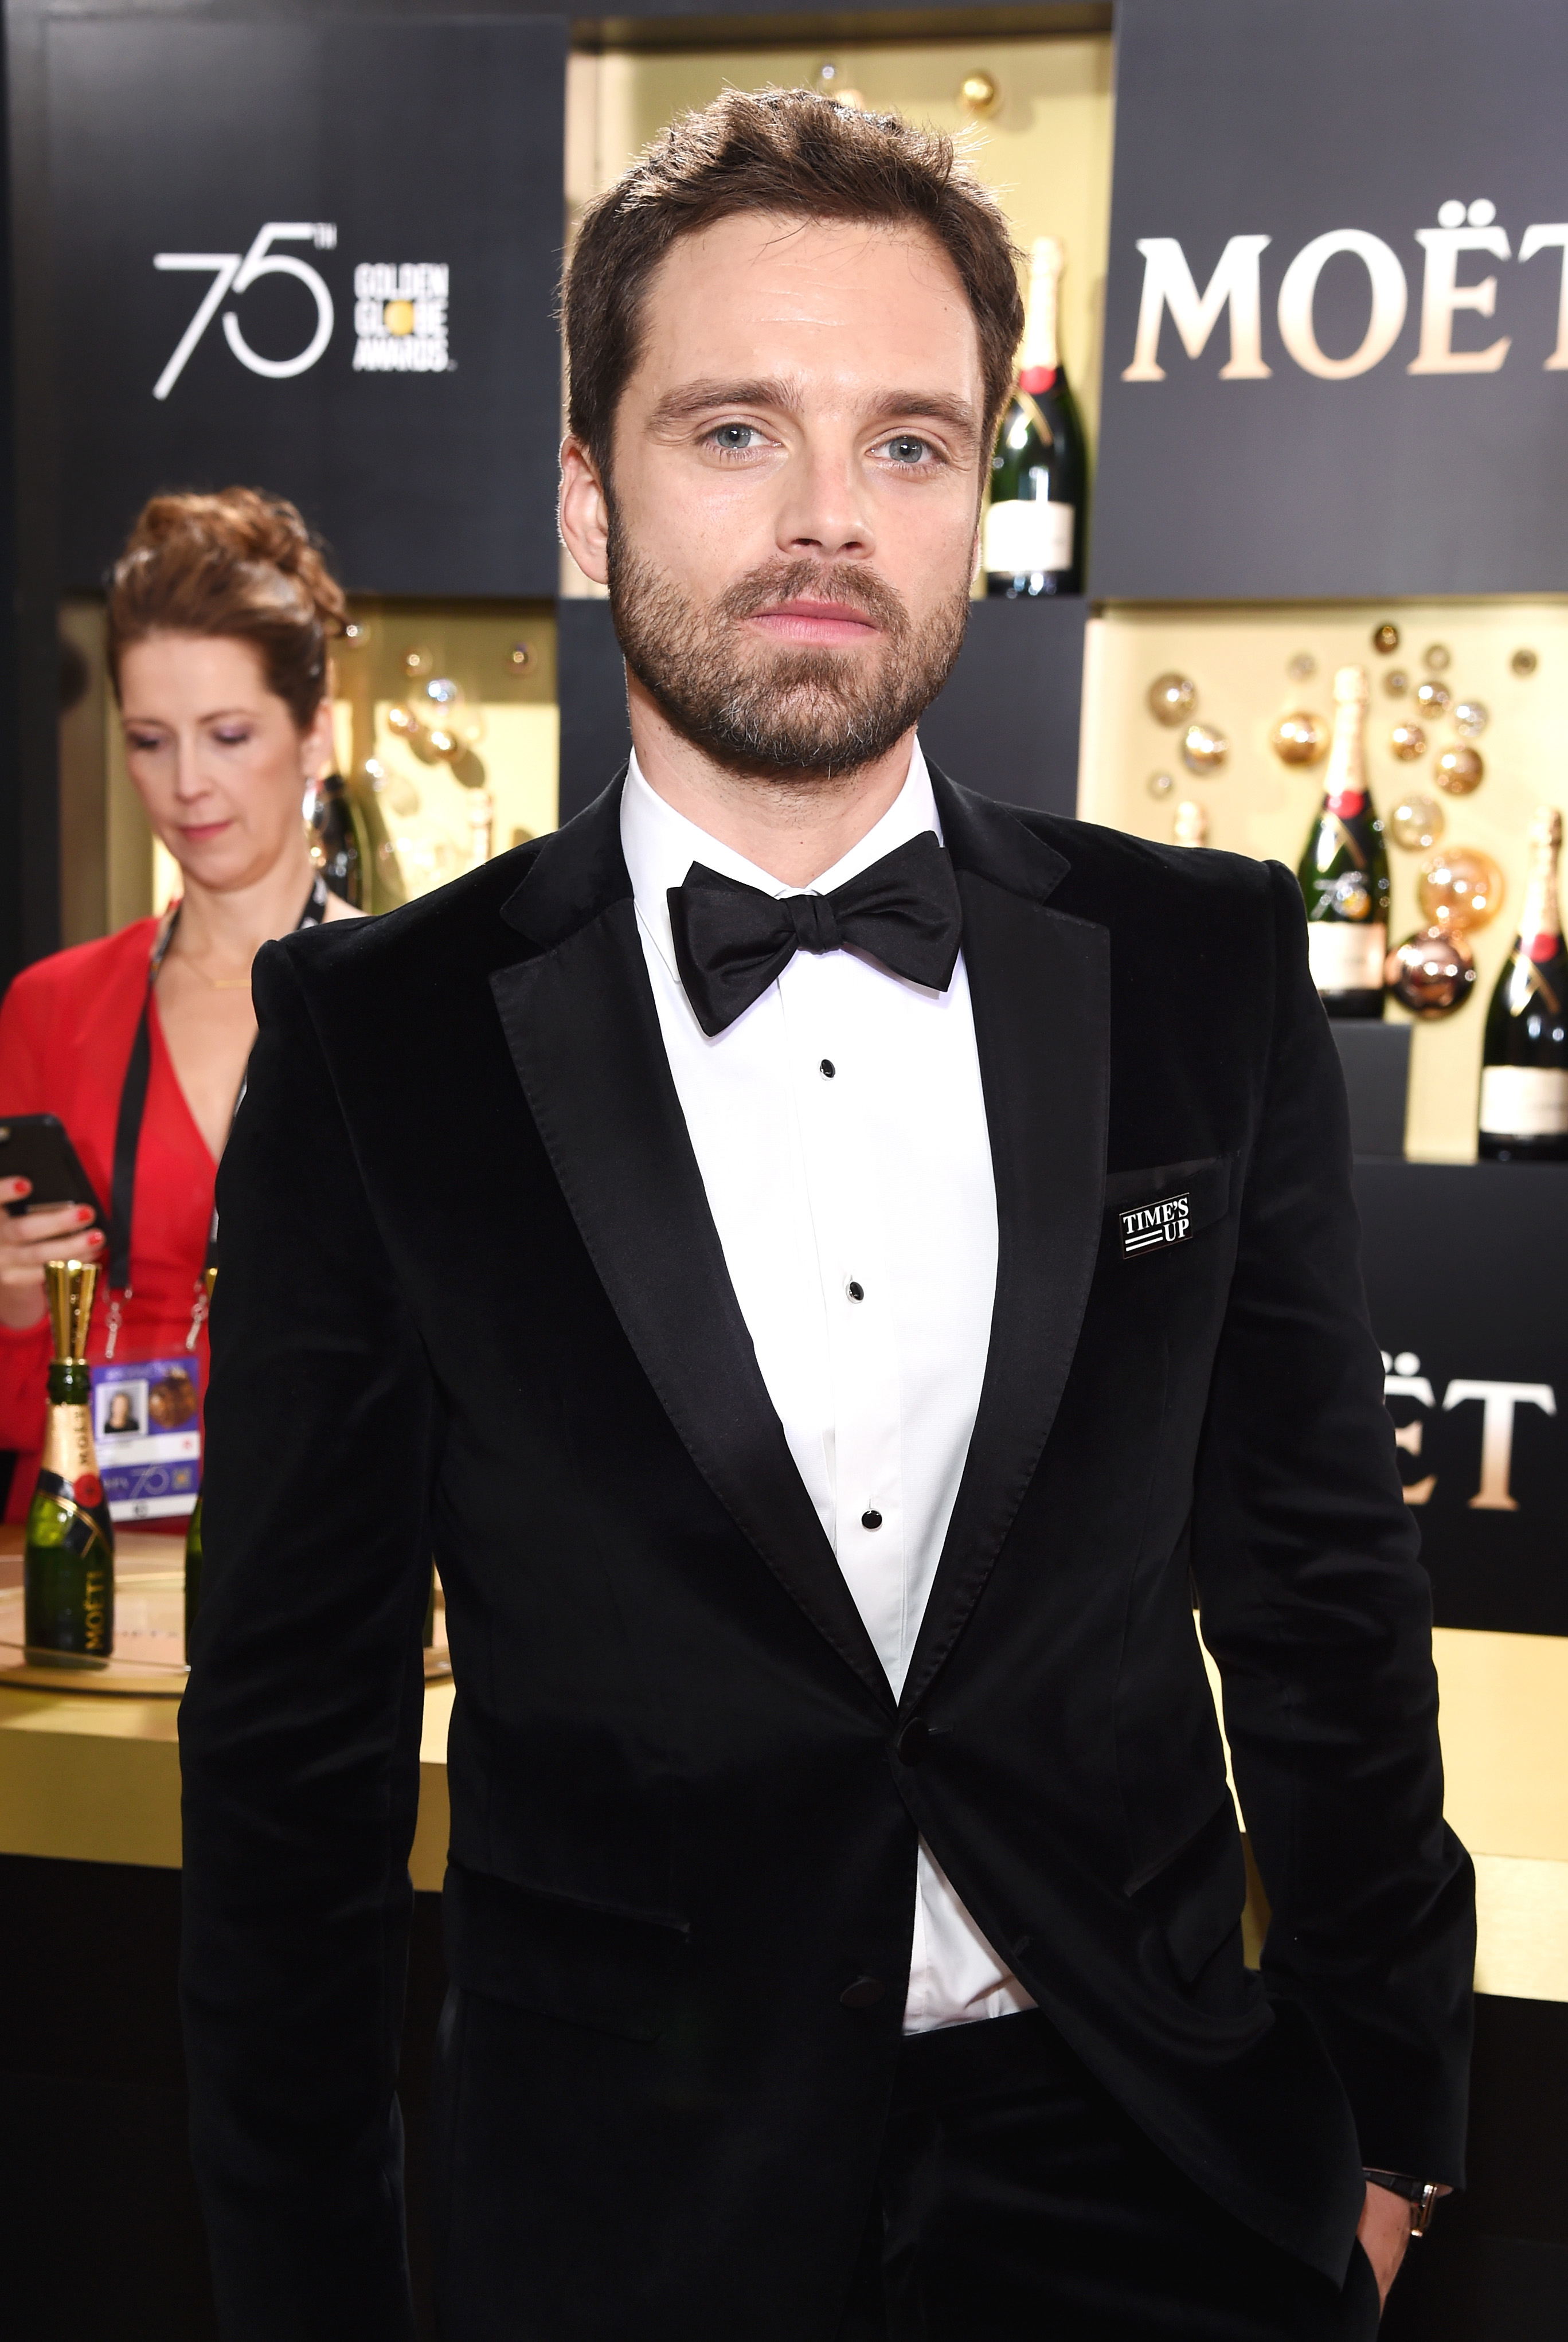 Actor Sebastian Stan celebrates The 75th Annual Golden Globe Awards with Moet & Chandon at The Beverly Hilton Hotel on January 7, 2018 in Beverly Hills, California.